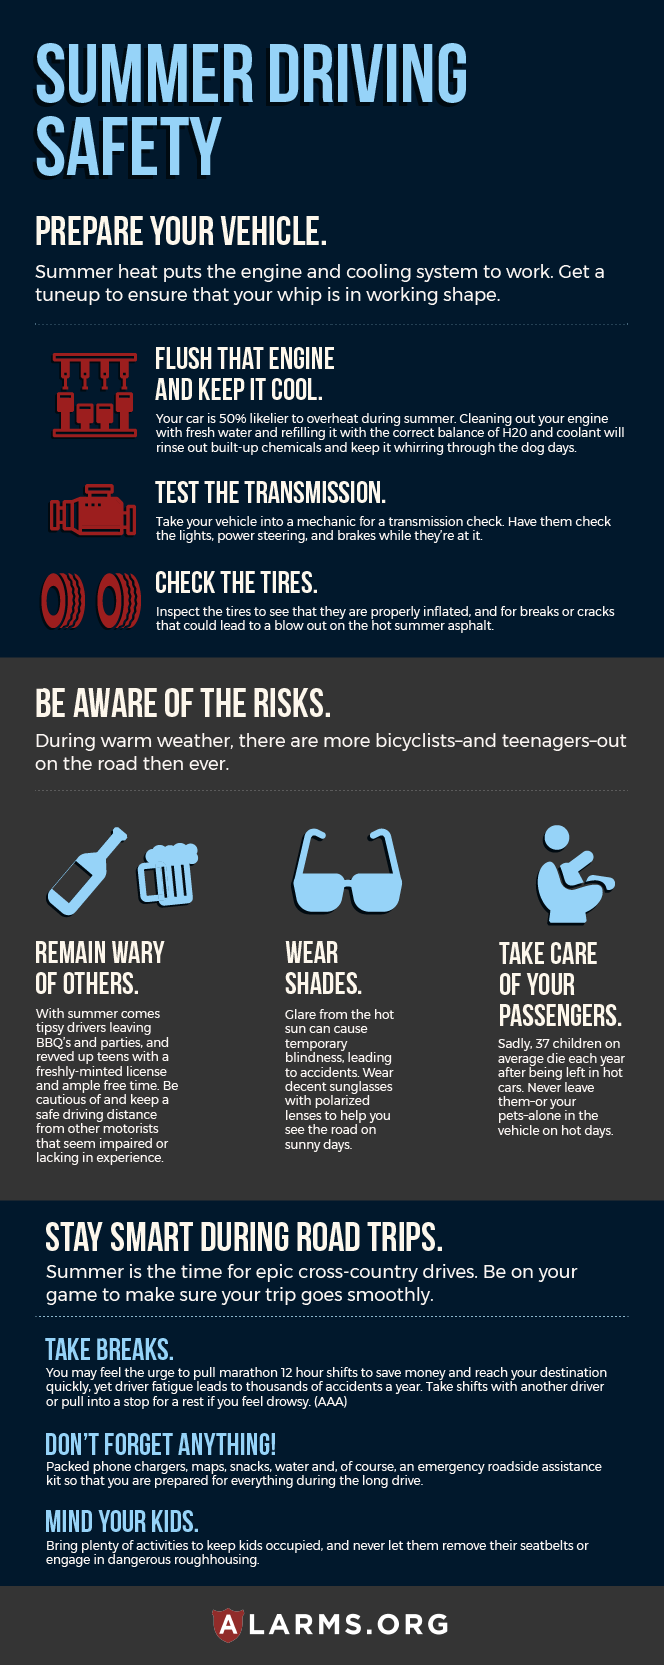 Infographic: Summer Driving Safety Tips